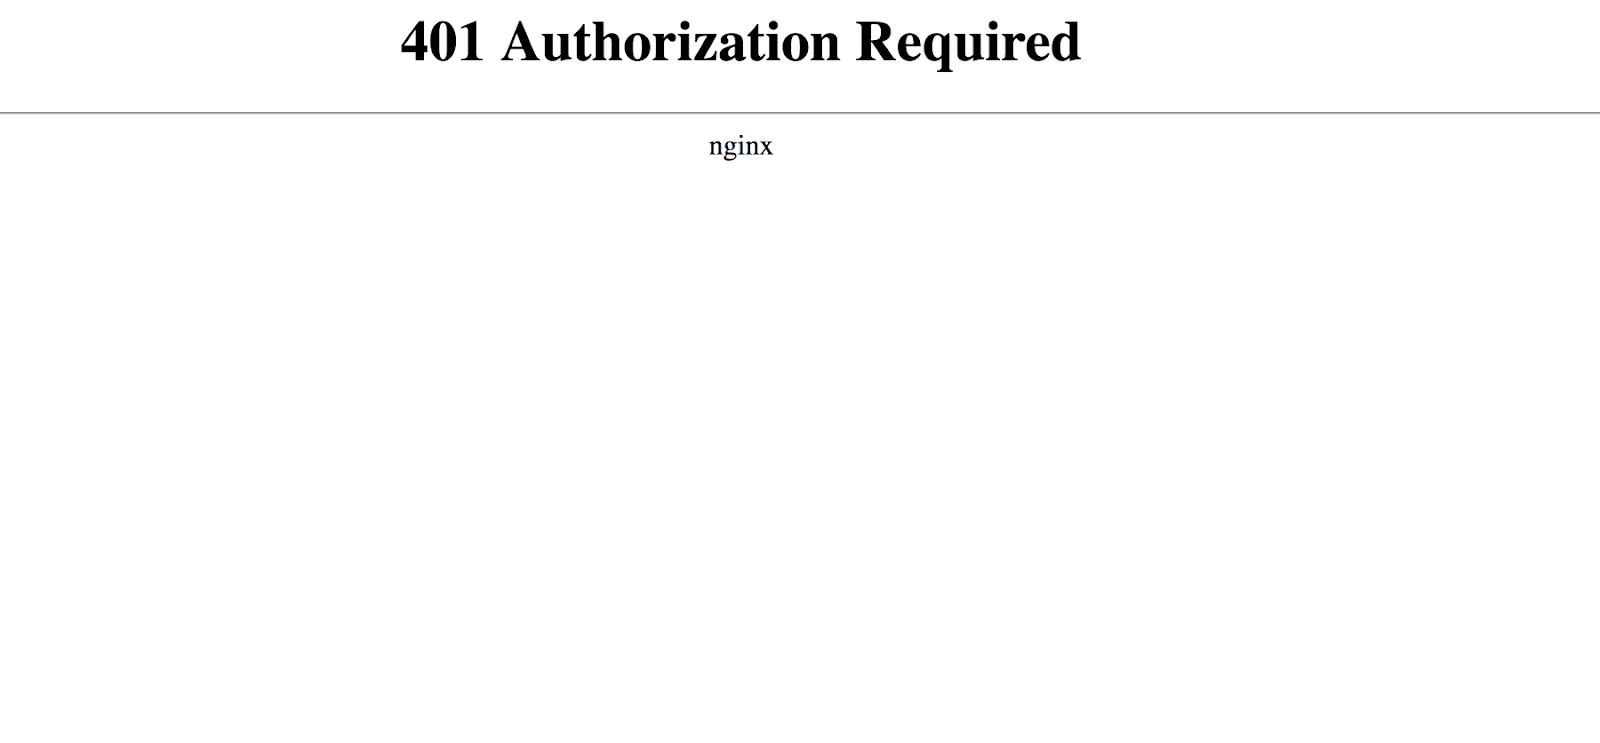 Felmeddelandet Nginx 401 Authorization required